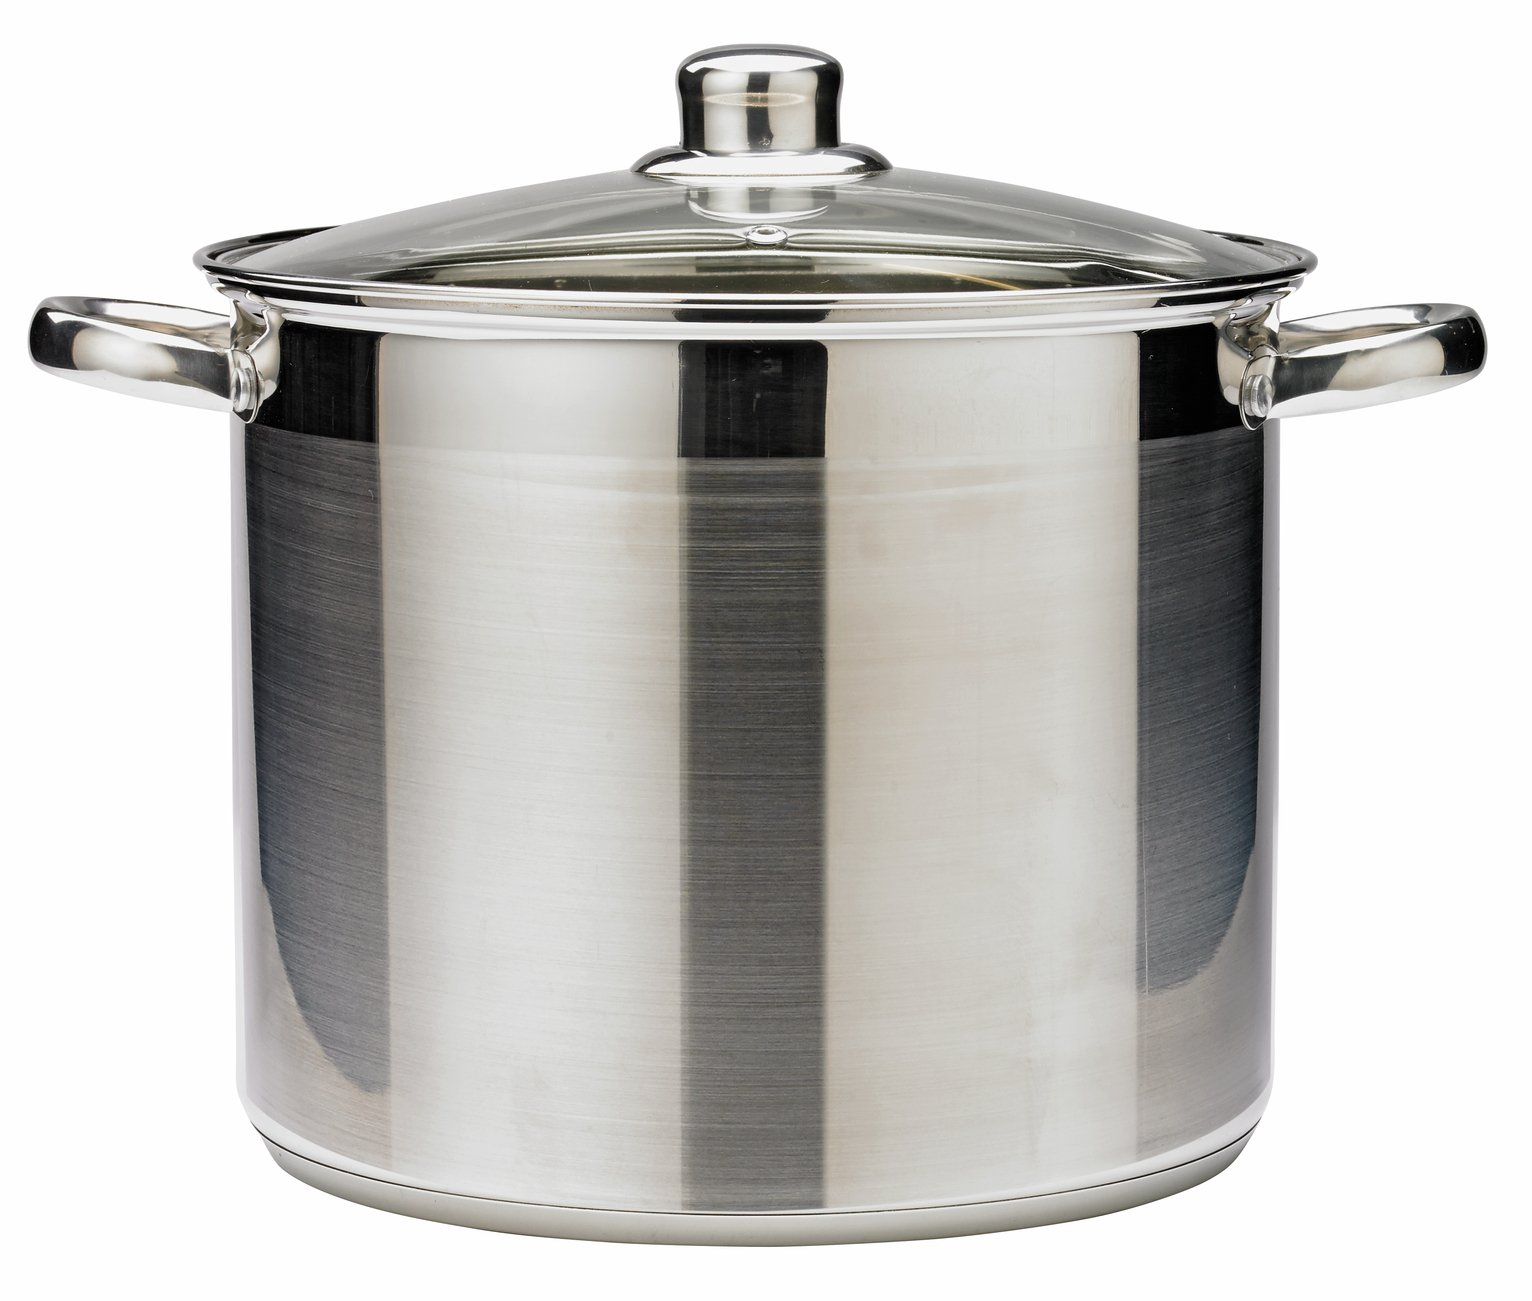 Argos Home 26cm Stainless Steel Stock Pot